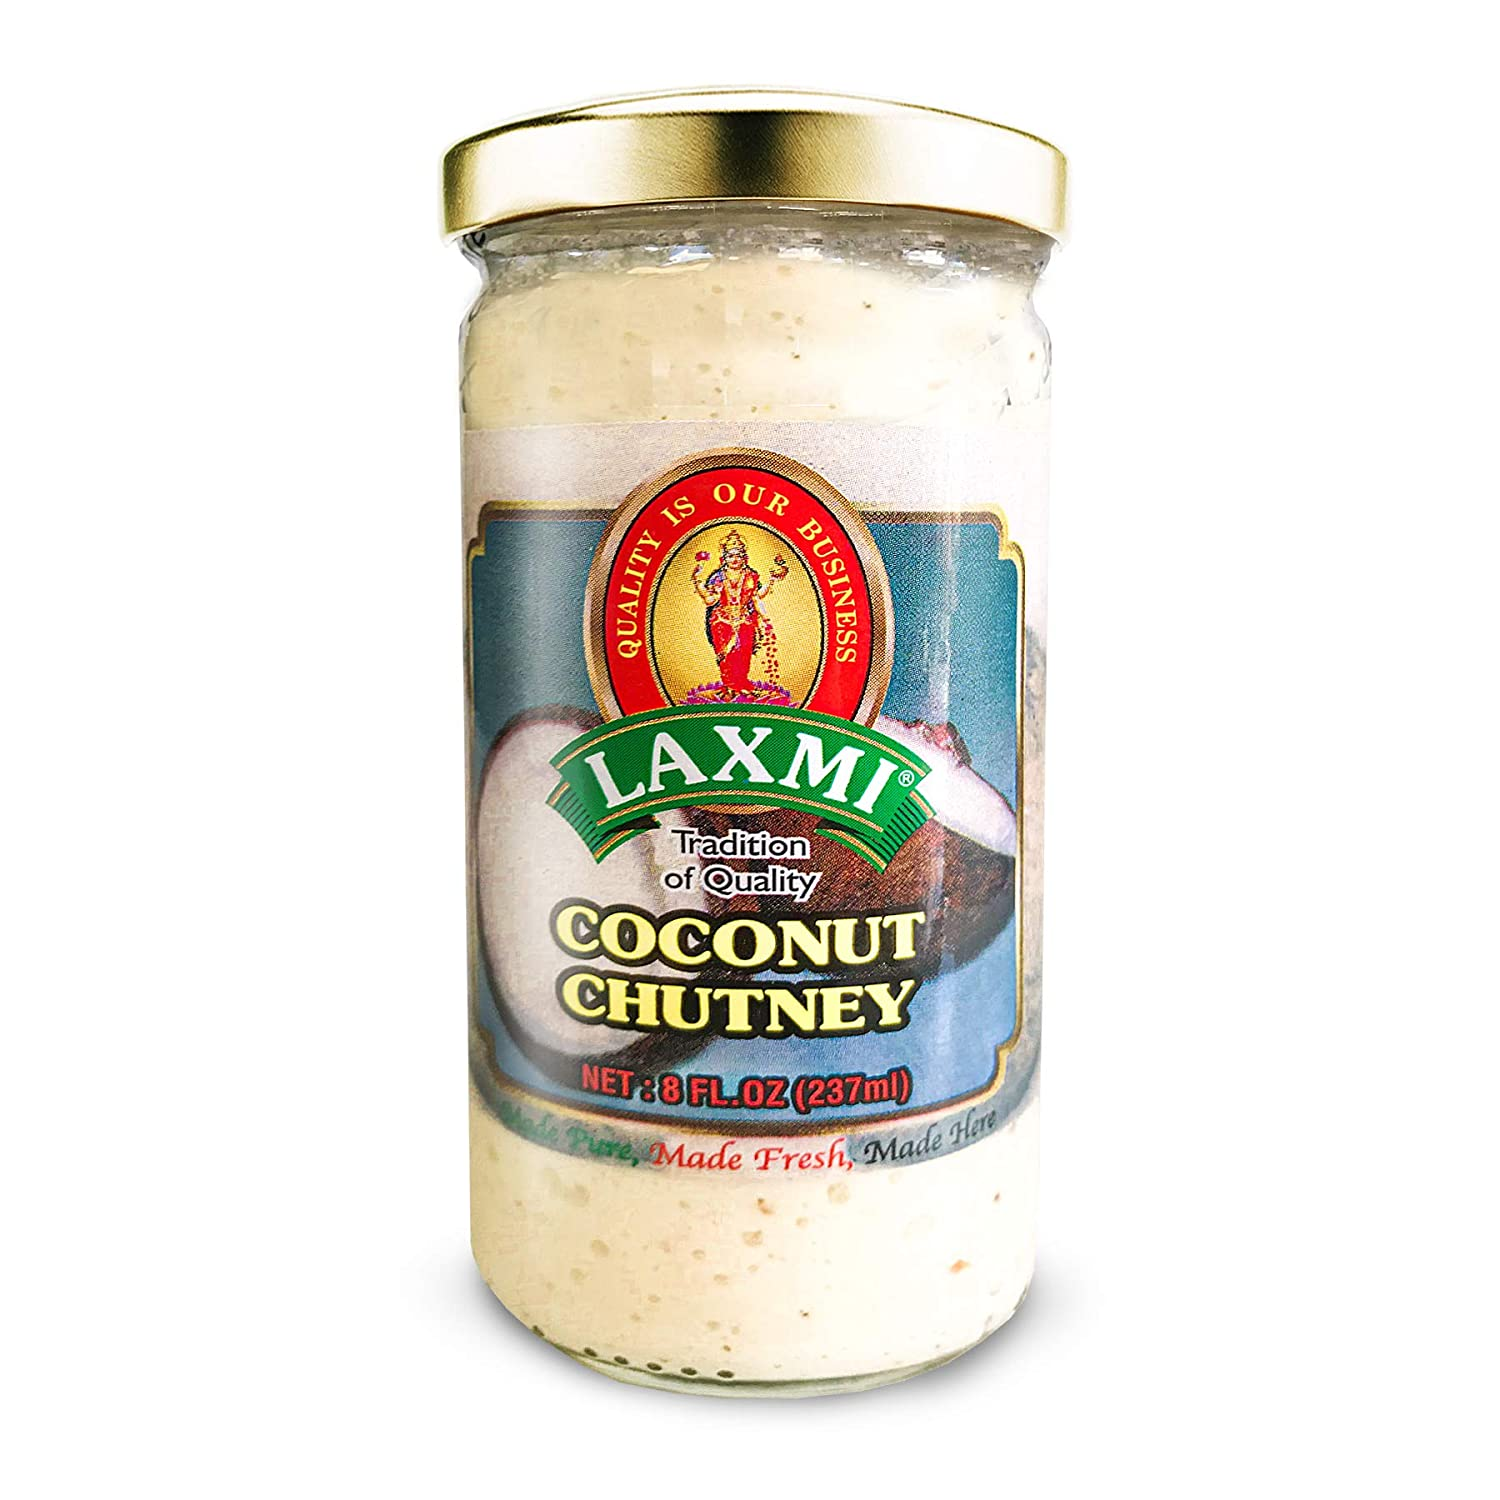 Laxmi Brand Chutney Authentic Max 44% OFF Herbs Price reduction Pure Made and Spices